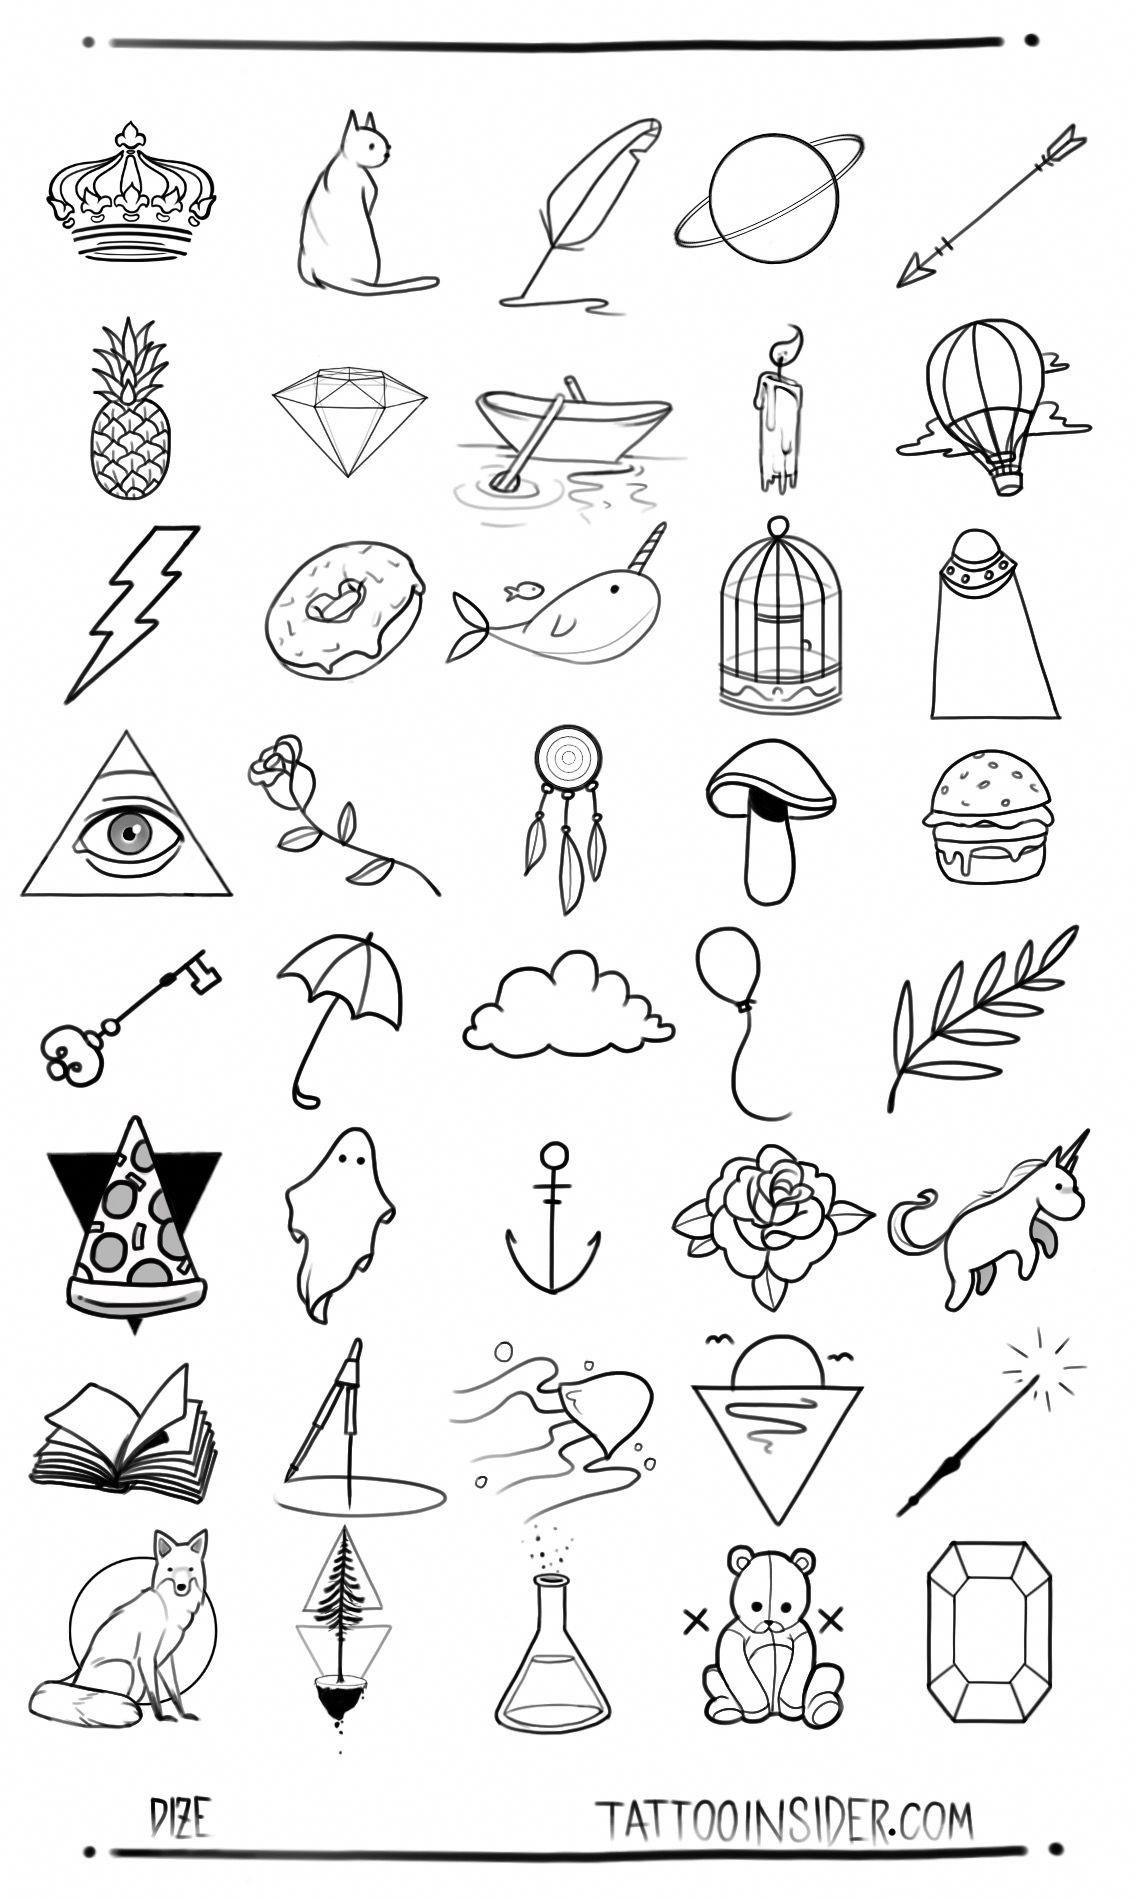 80 Free Small Tattoo Designs Small tattoos for guys